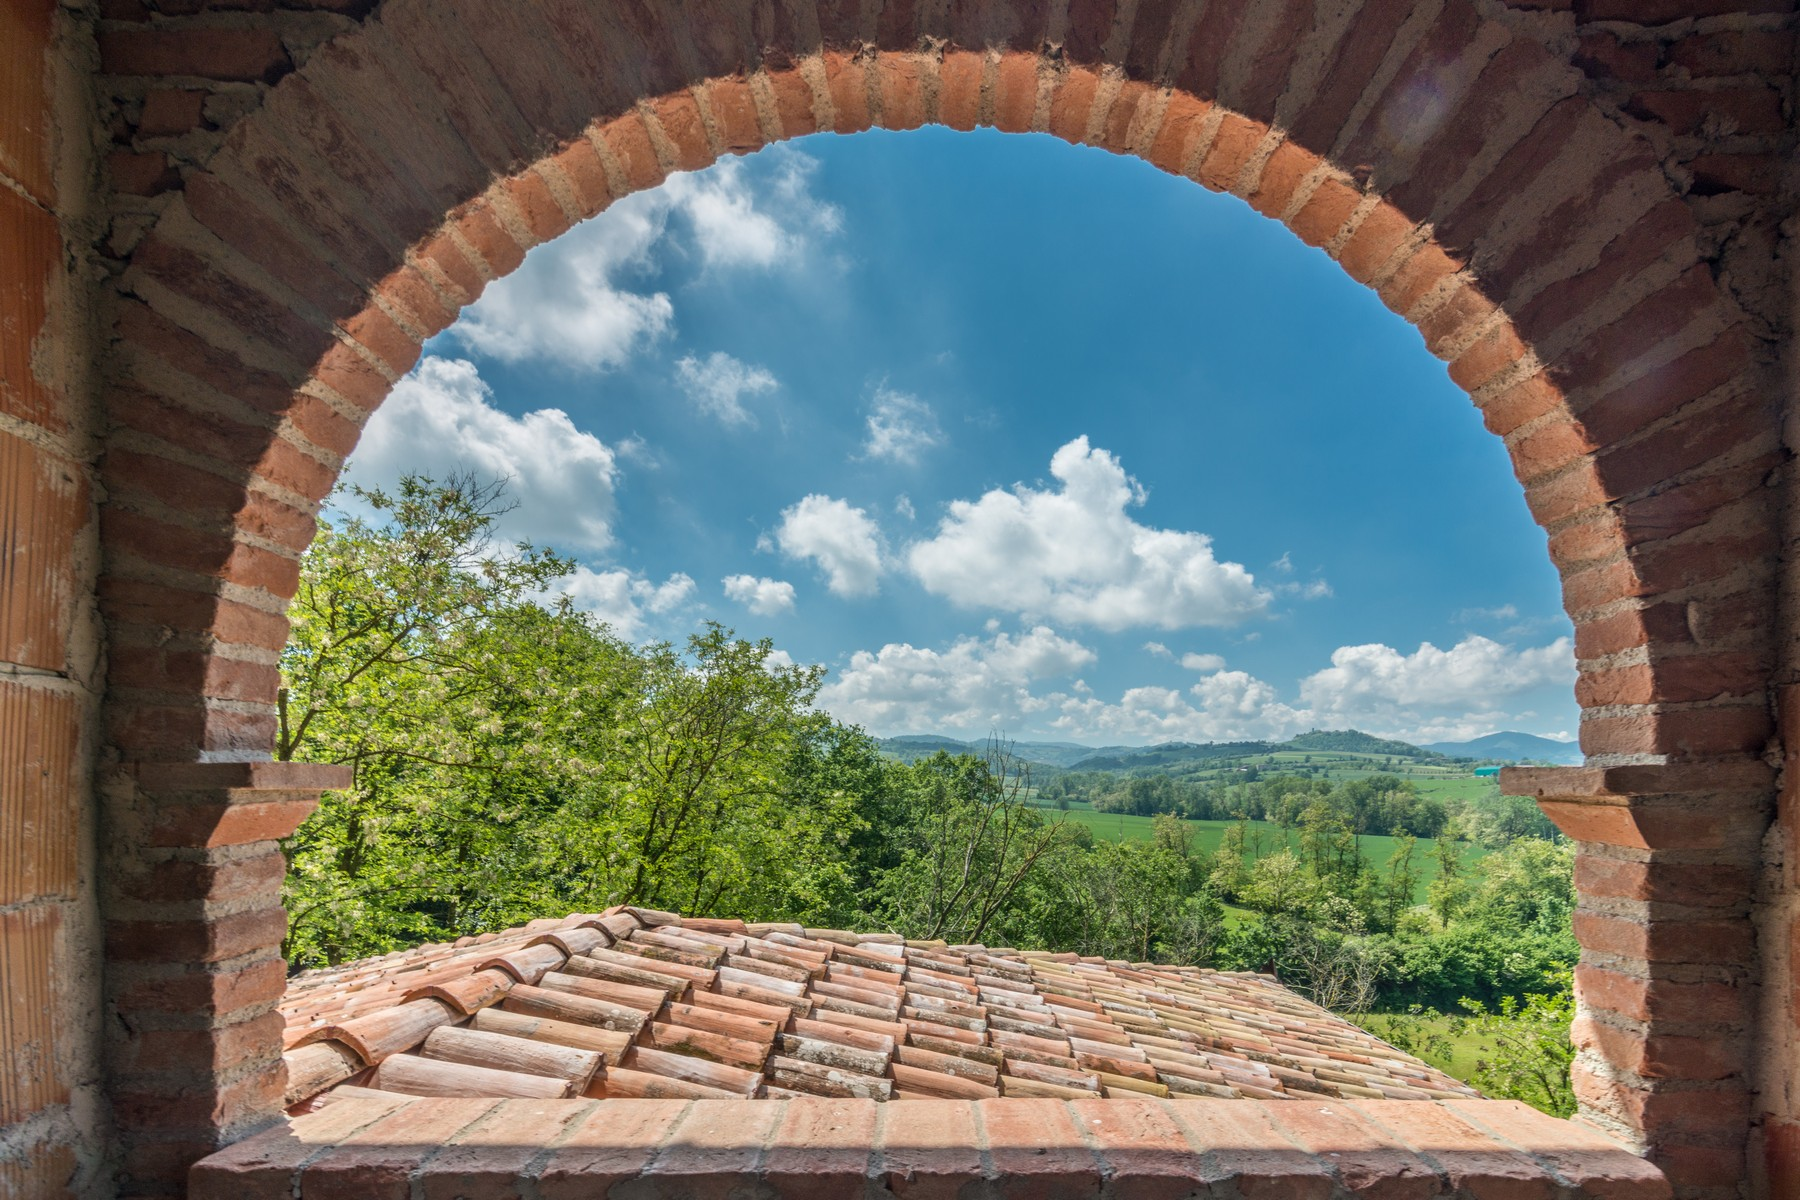 Single Family Home for Sale at Intriguing property immersed in the countryside Agazzano Other Piacenza, Piacenza 29010 Italy